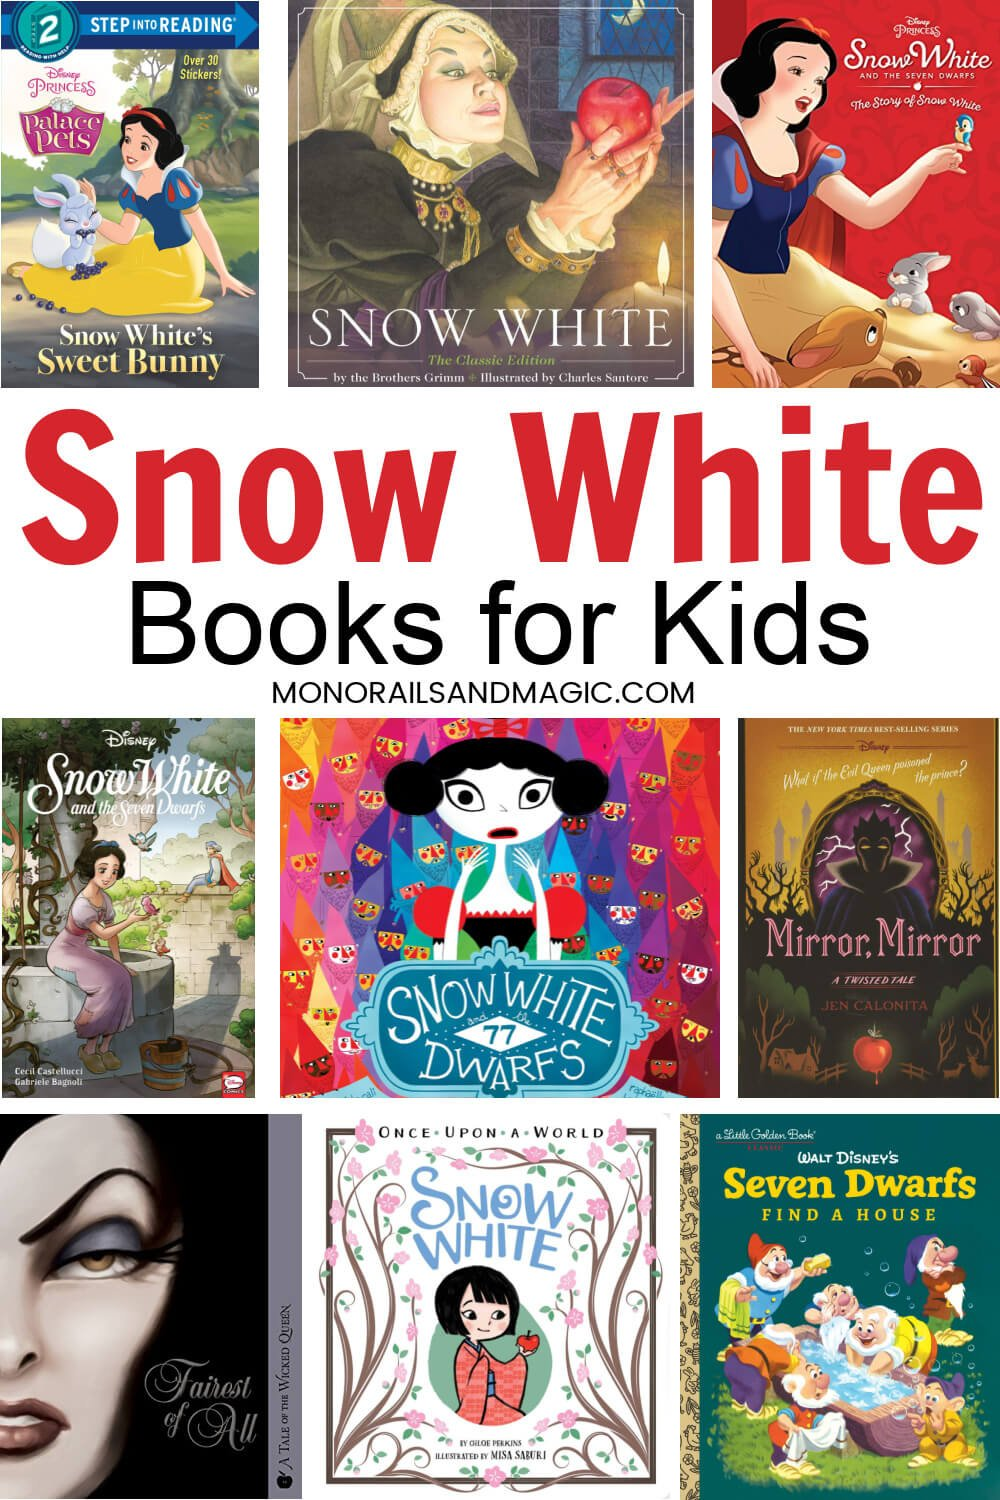 List of Snow White and the Seven Dwarfs books for kids.